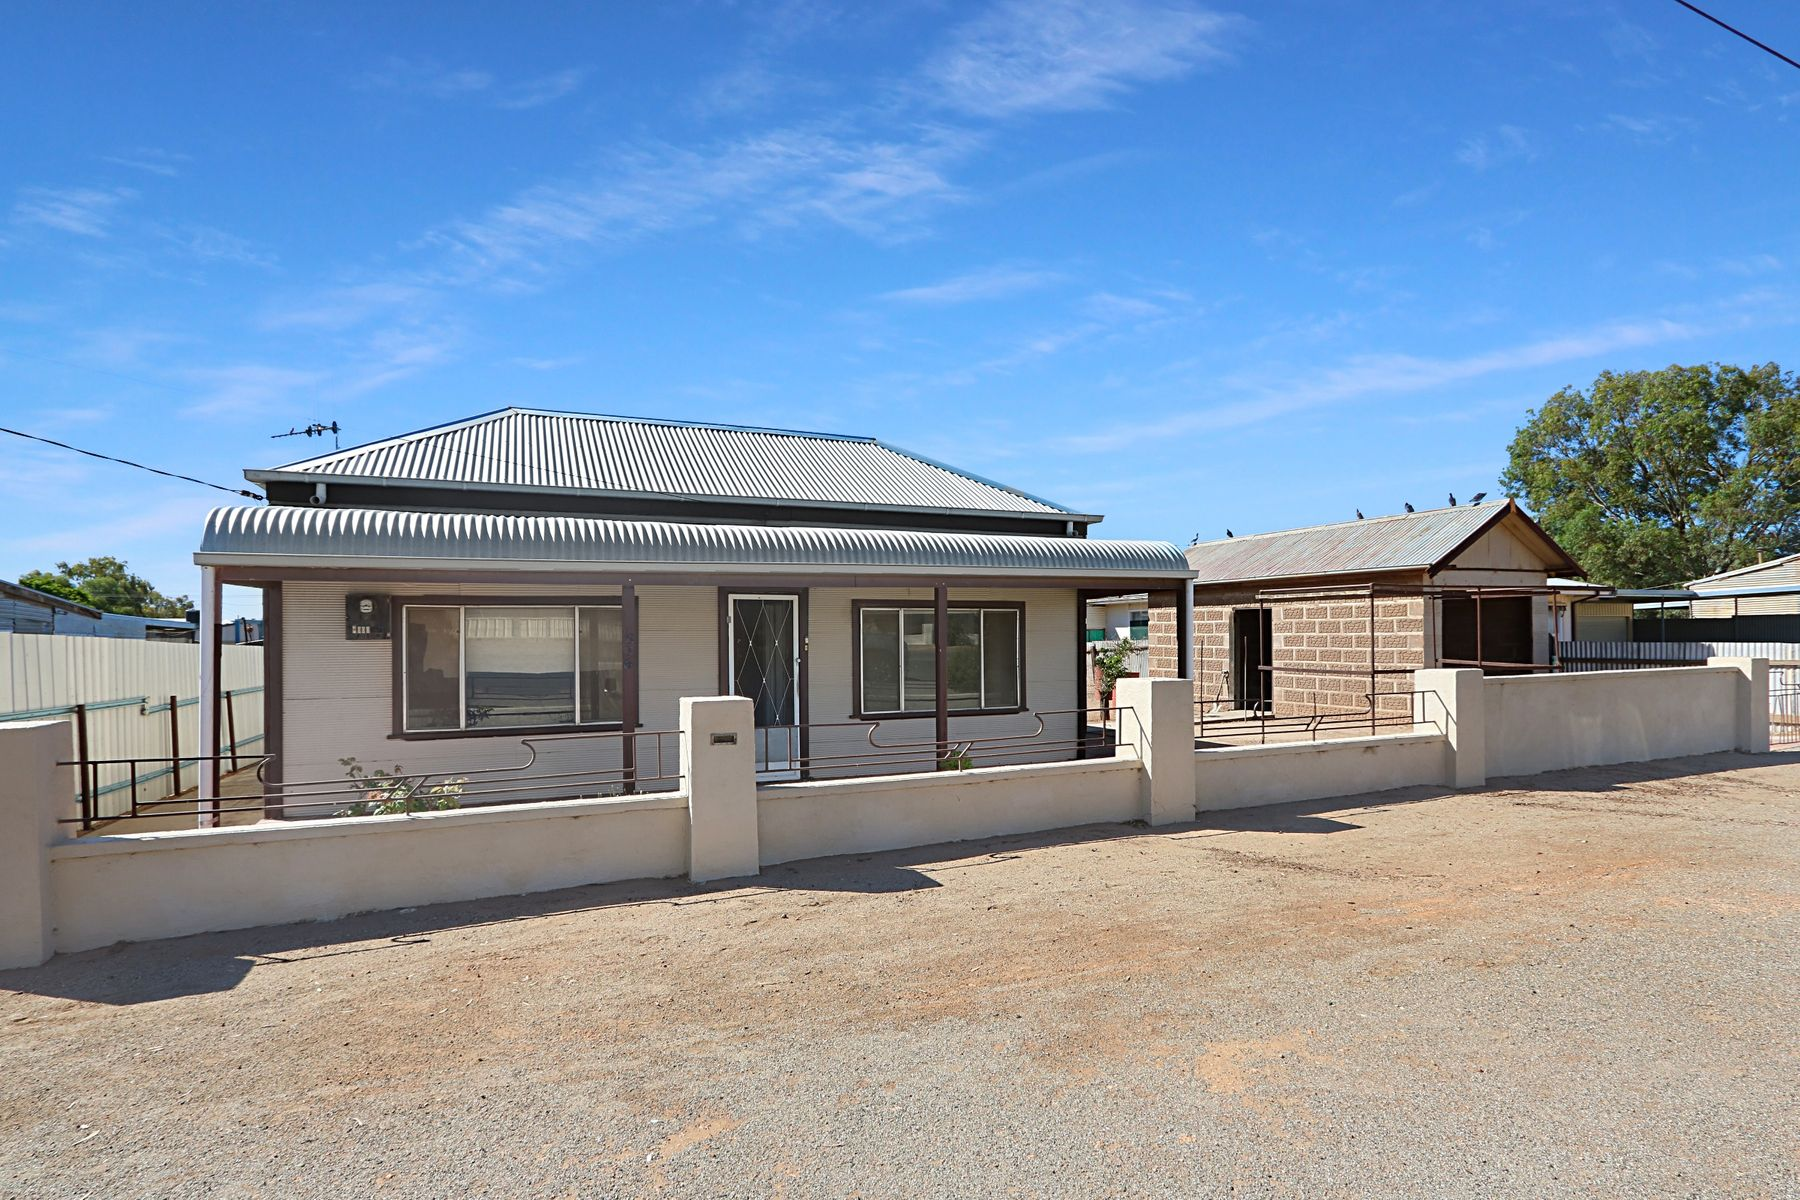 536 Blende Street, Broken Hill, NSW 2880